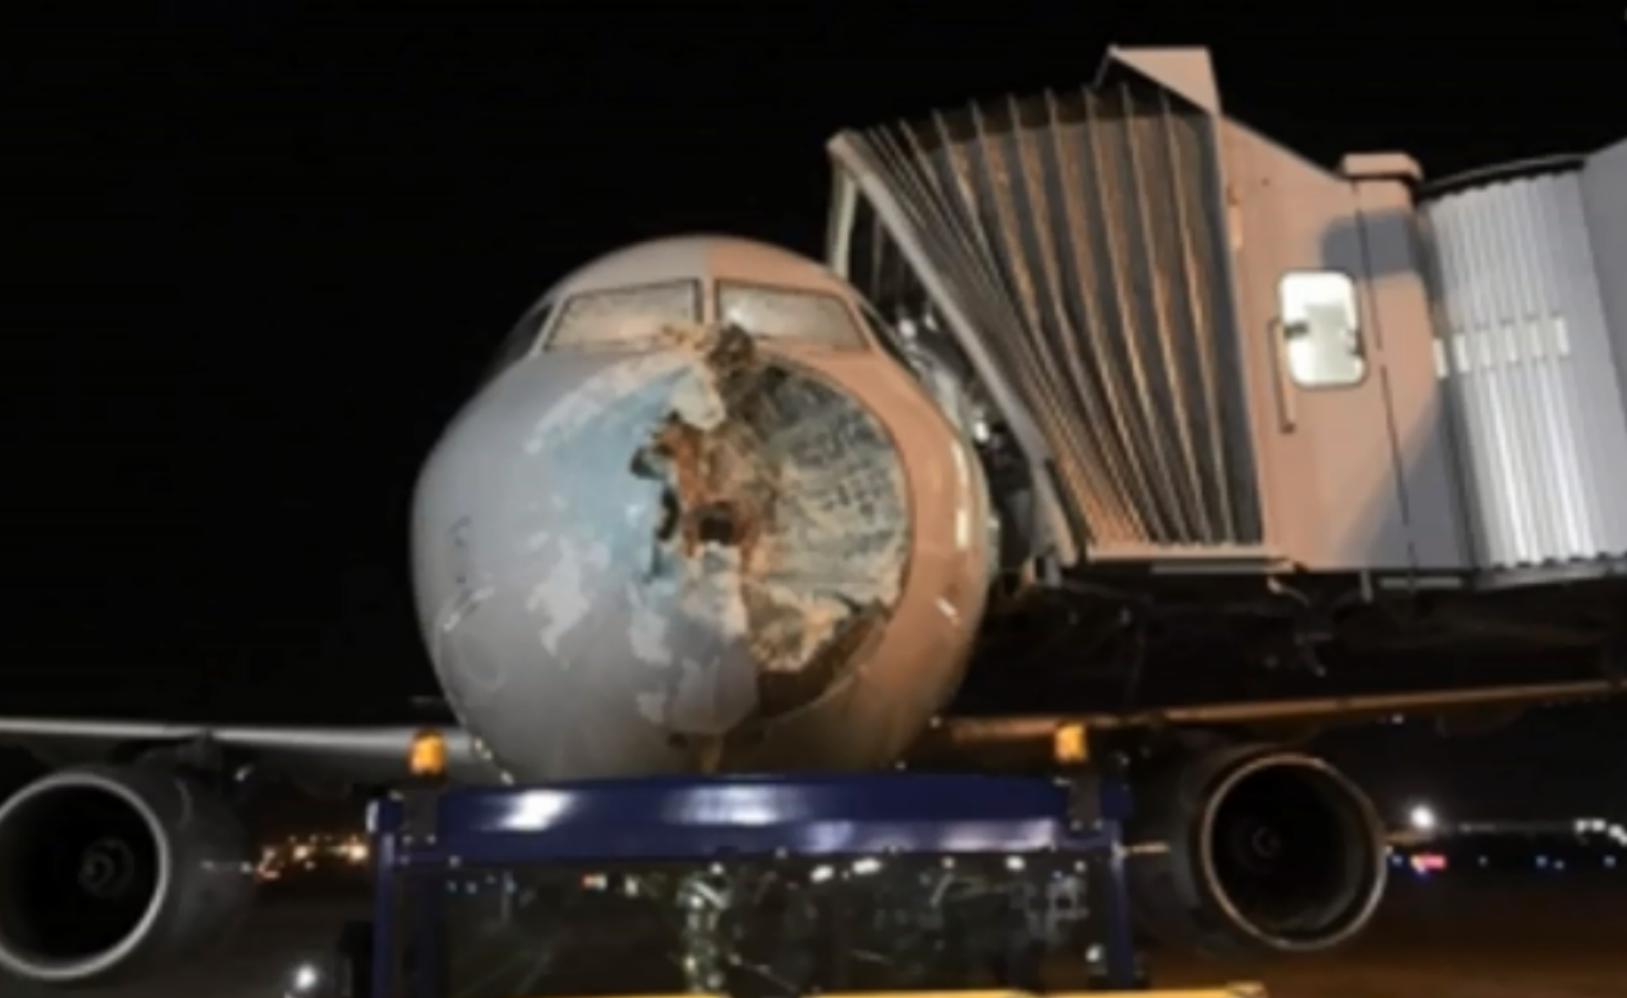 American Airlines flight 1897 makes emergency landing in El Paso, Texas after a severe hailstorm damages the plane's nose and windshield.